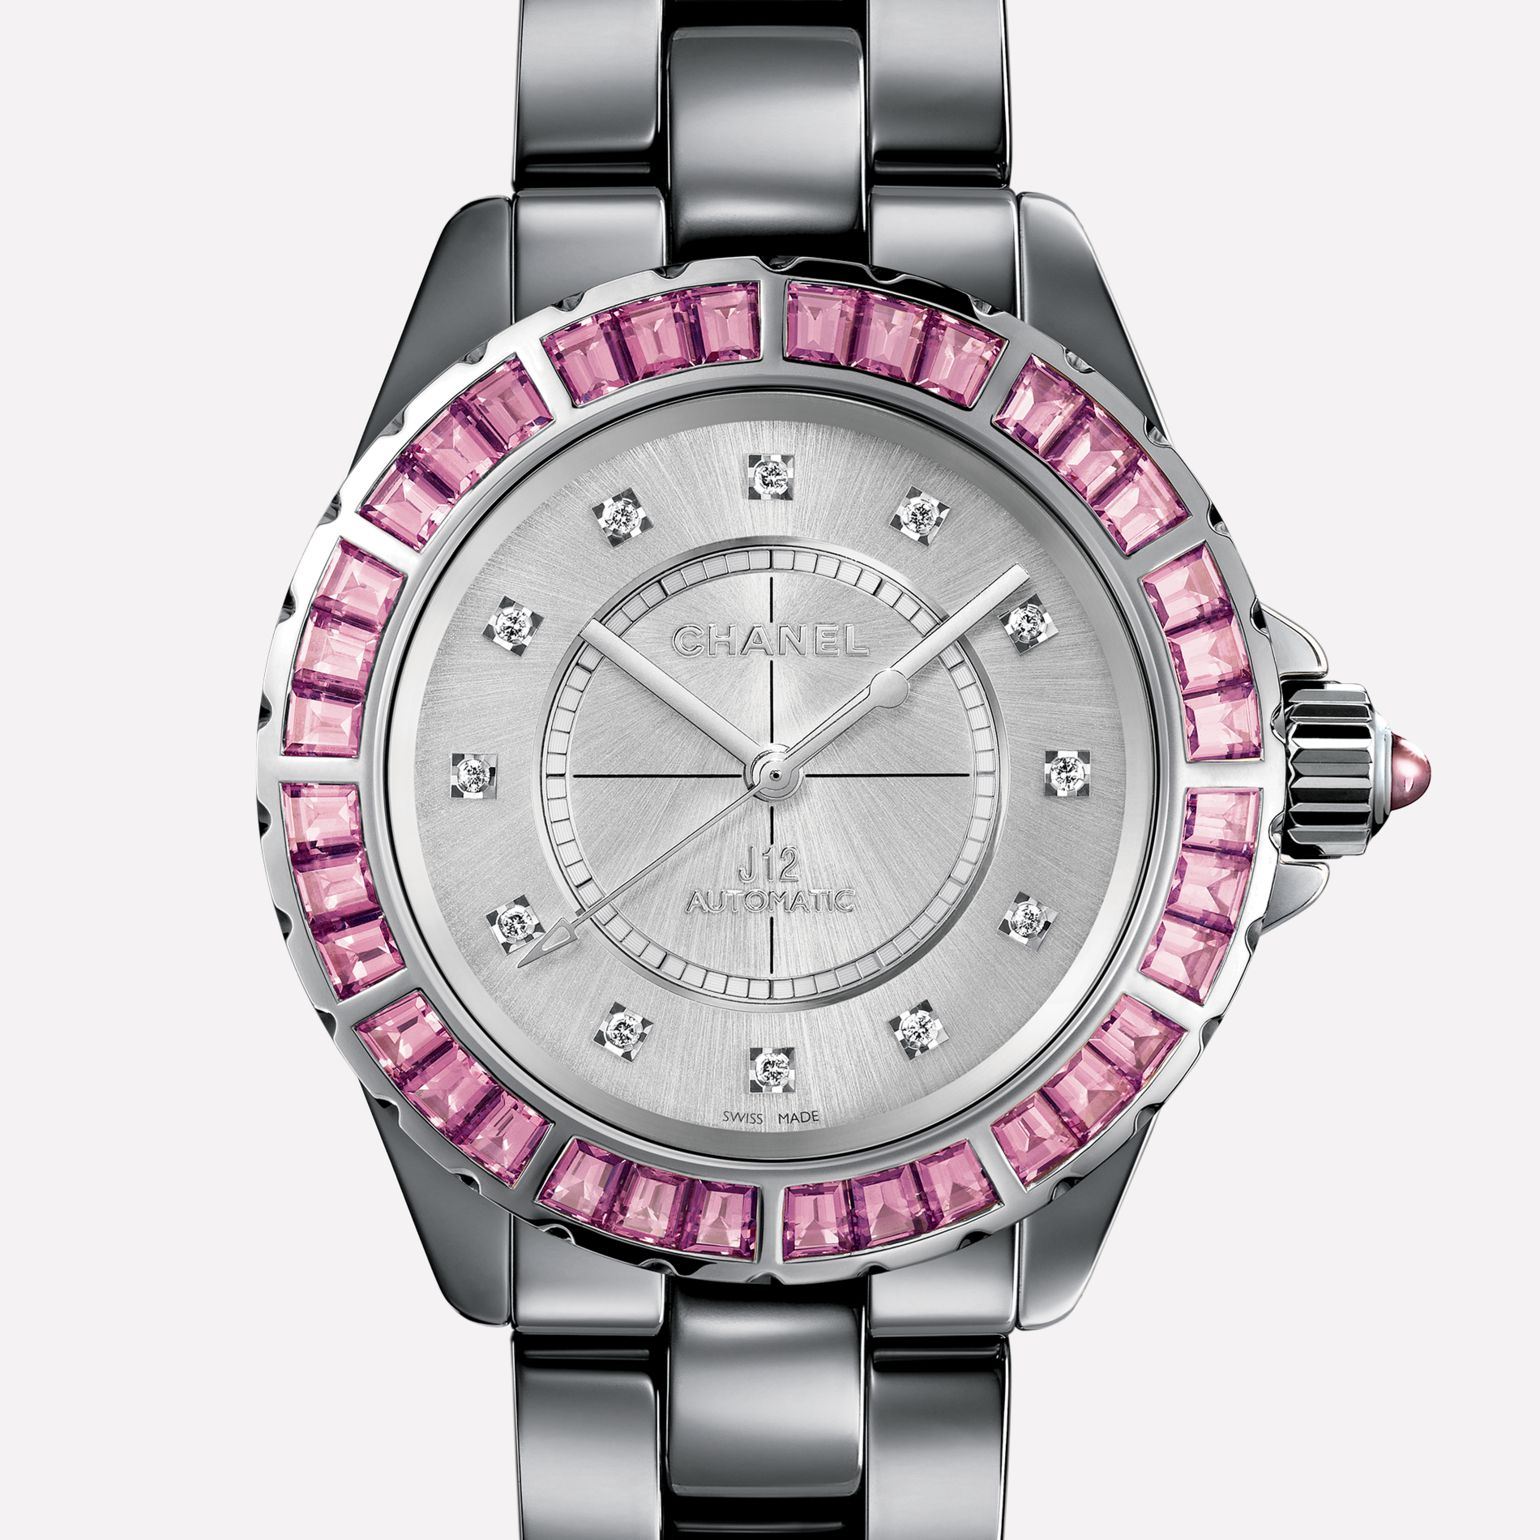 J12 Jewelry Watch Titanium ceramic and white gold, bezel set with pink baguette-cut sapphires, diamond indicators